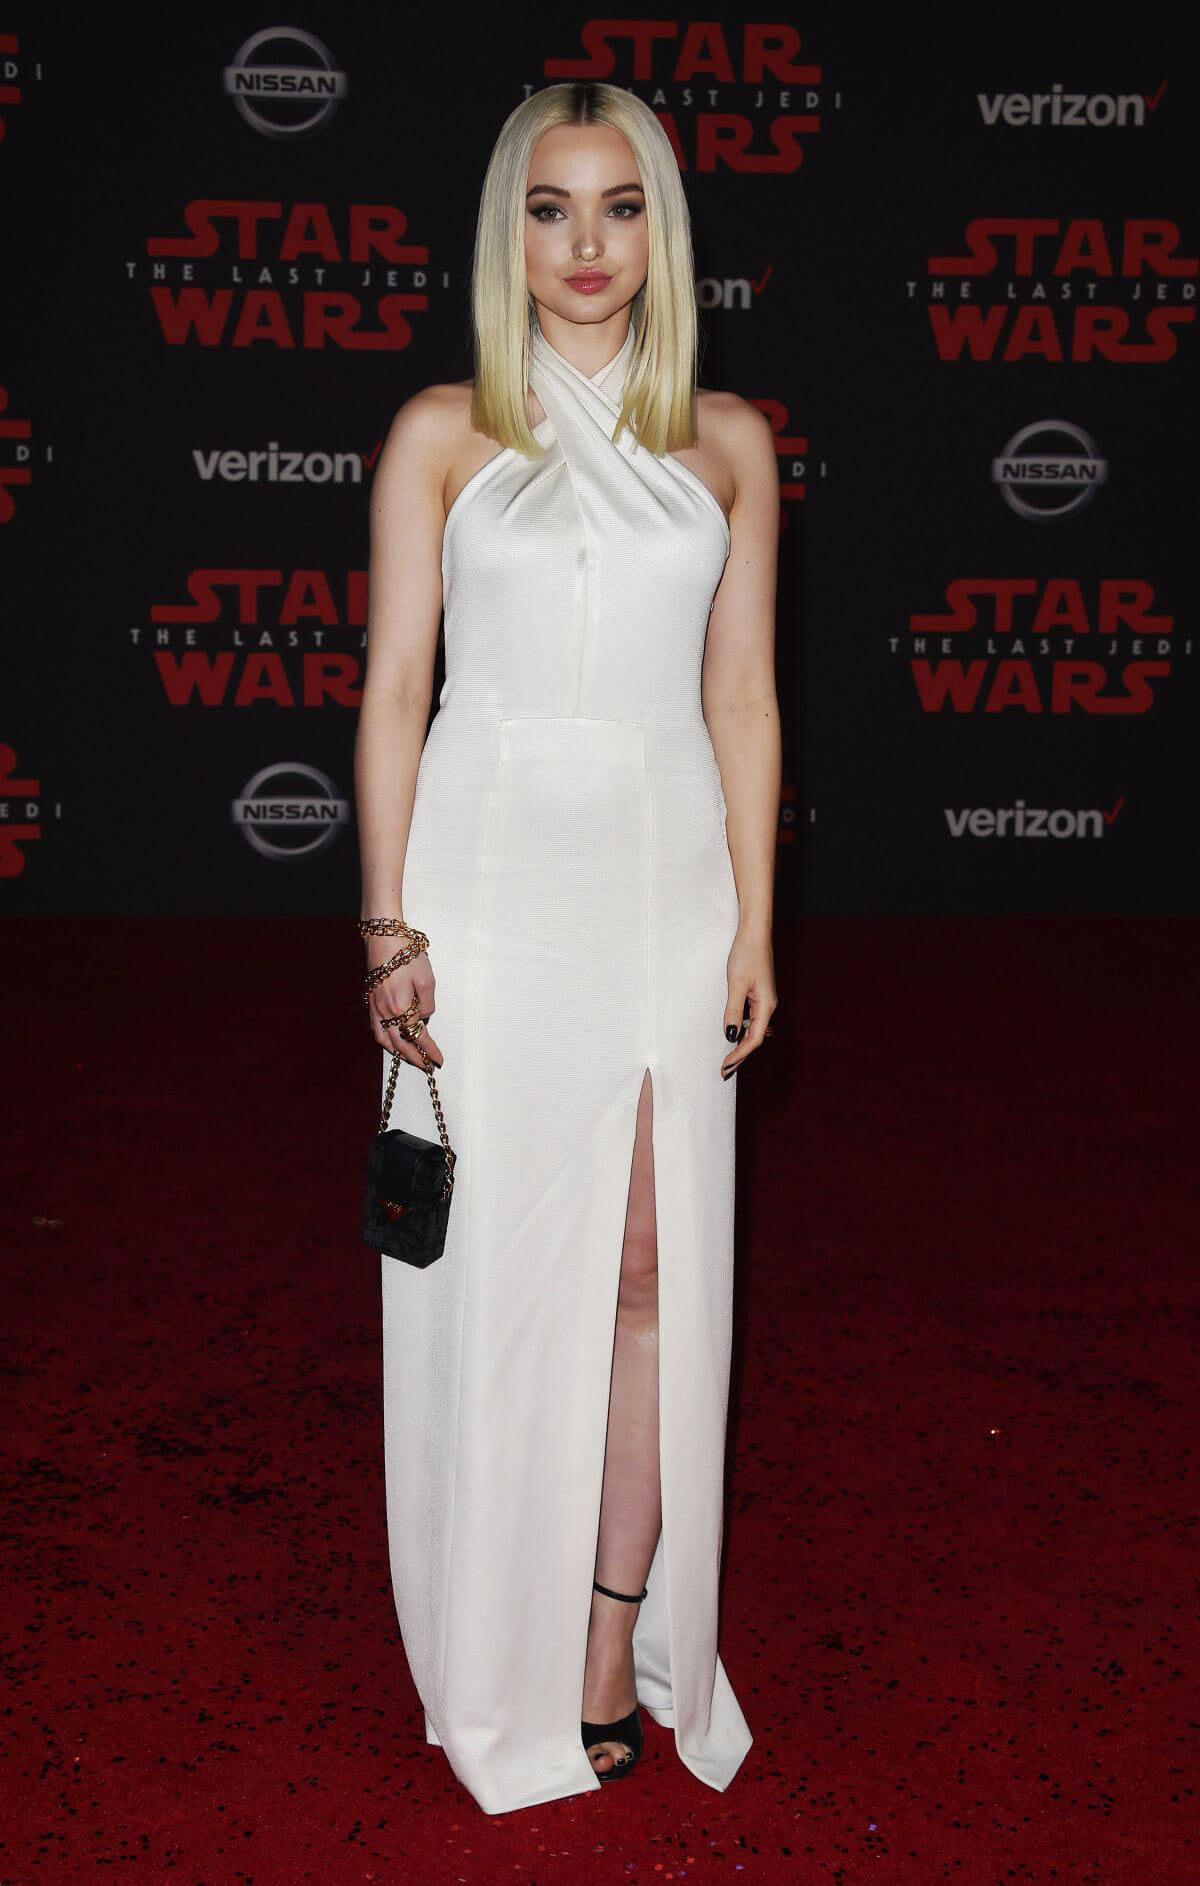 Dove Cameron Stills At Star Wars The Last Jedi Premiere